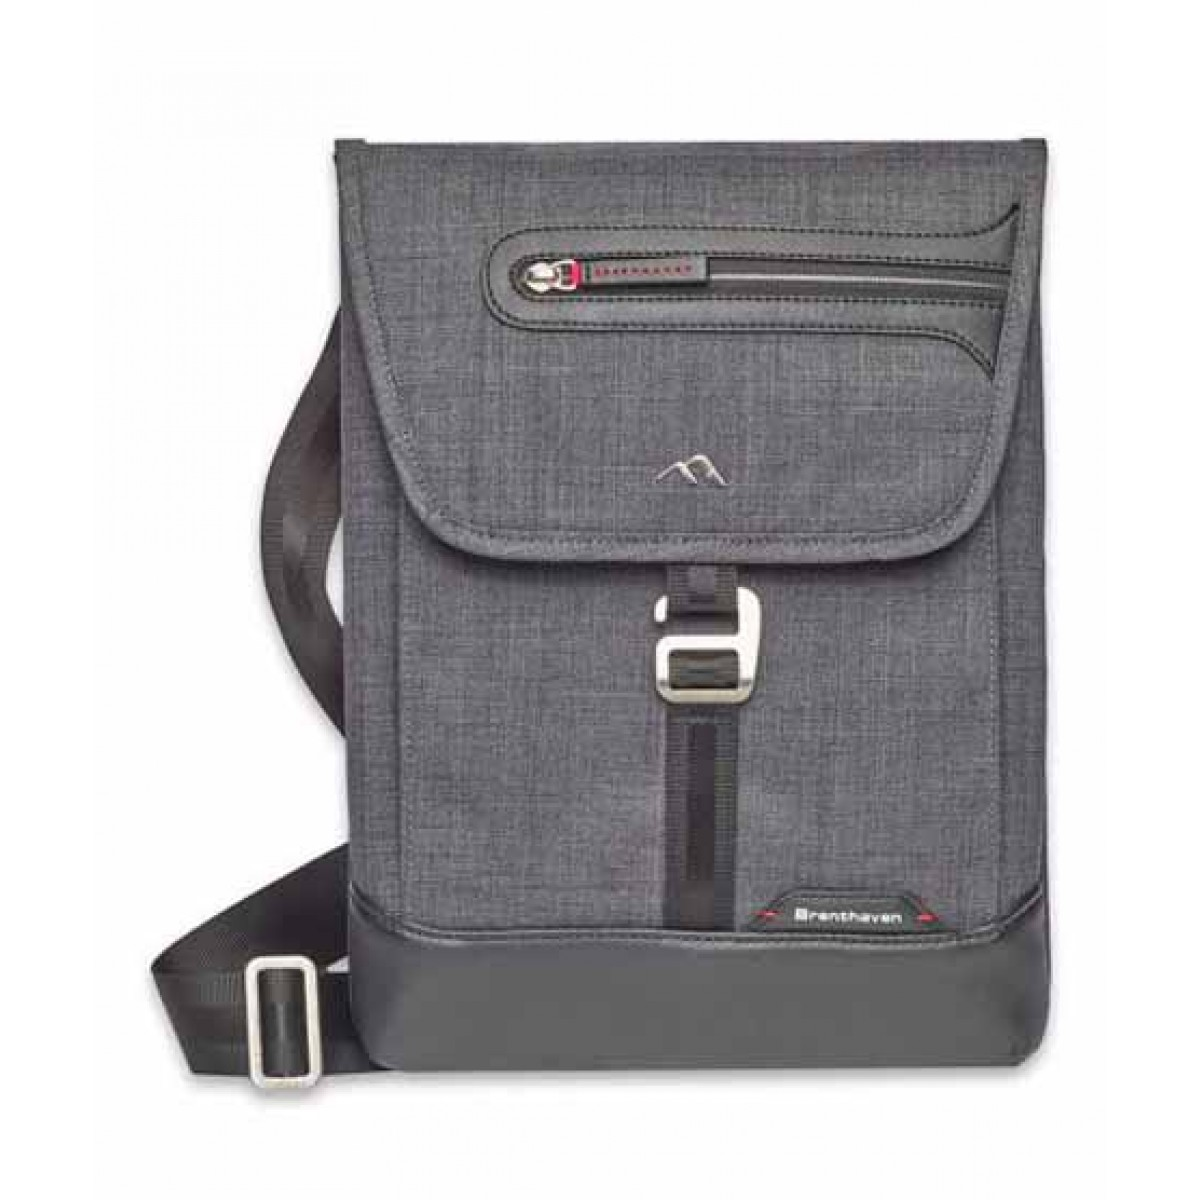 163b4bfe75 Brenthaven Surface Pro 4 Messenger Bag Price in Pakistan